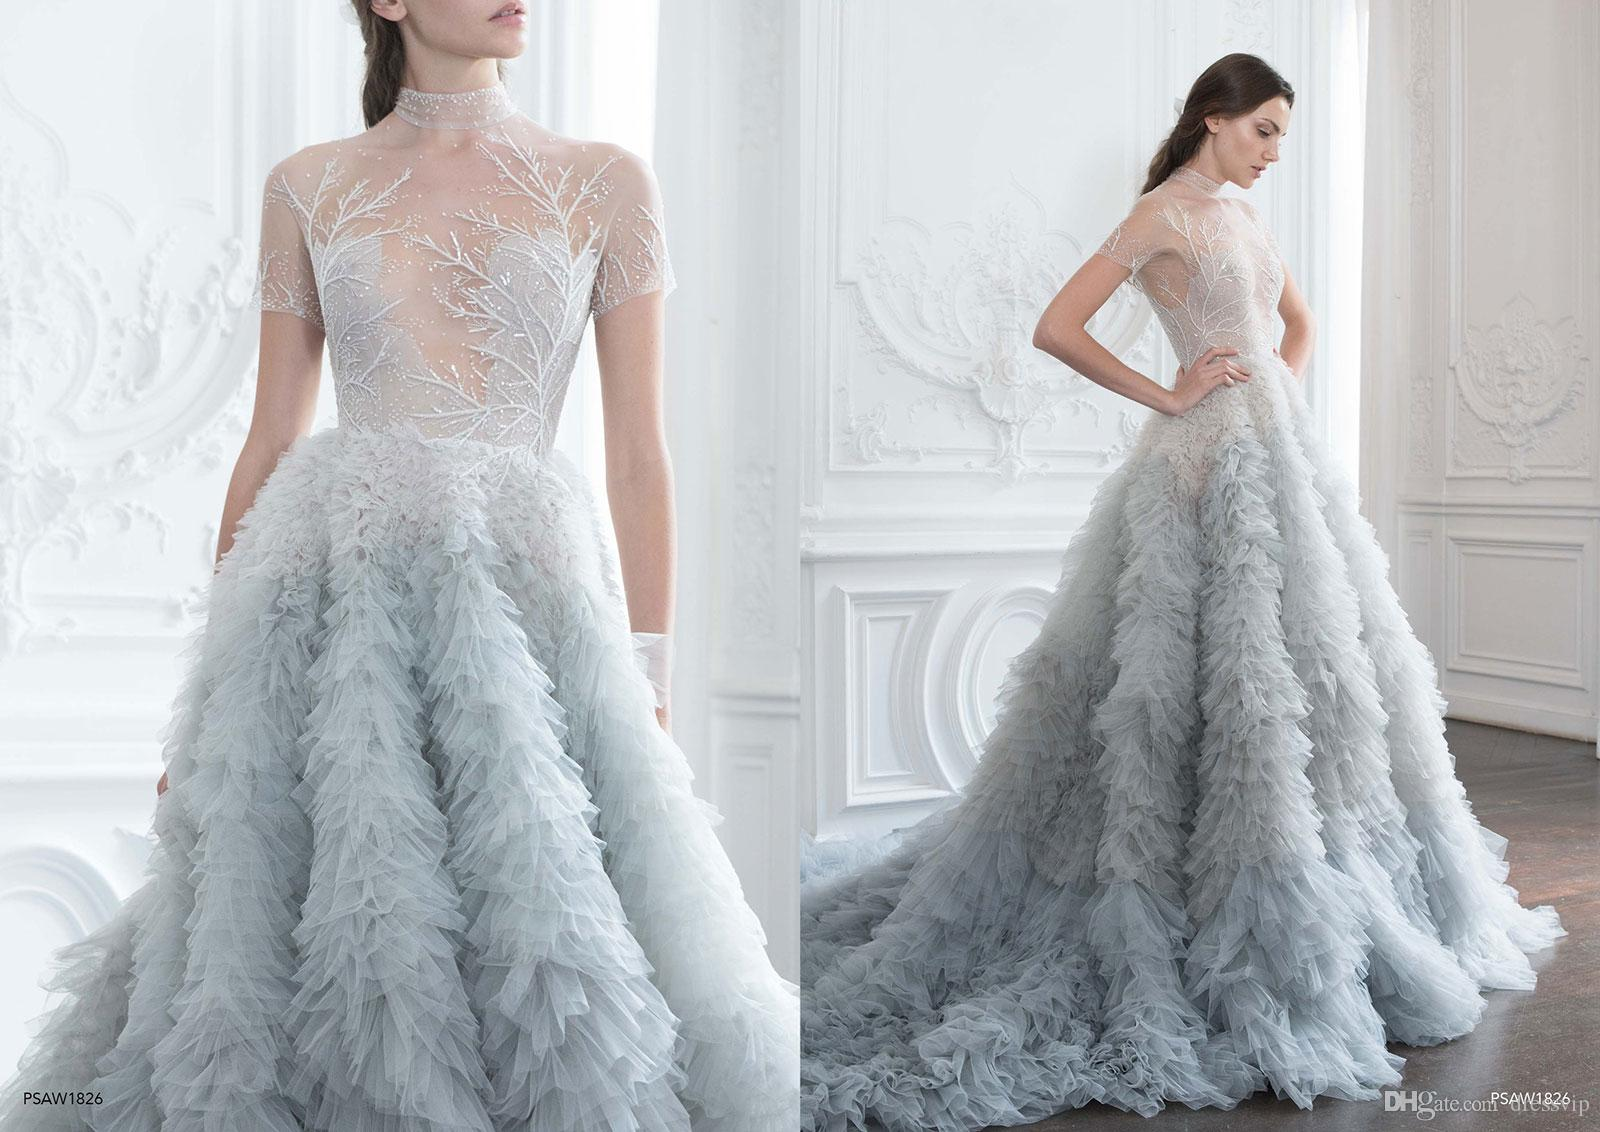 New Arrival Paolo Sebastian Prom Dresses High Neck Short Sleeves Tiered Ruffle Lace Appliques Formal Dress Party Quinceanera Dresses 2018